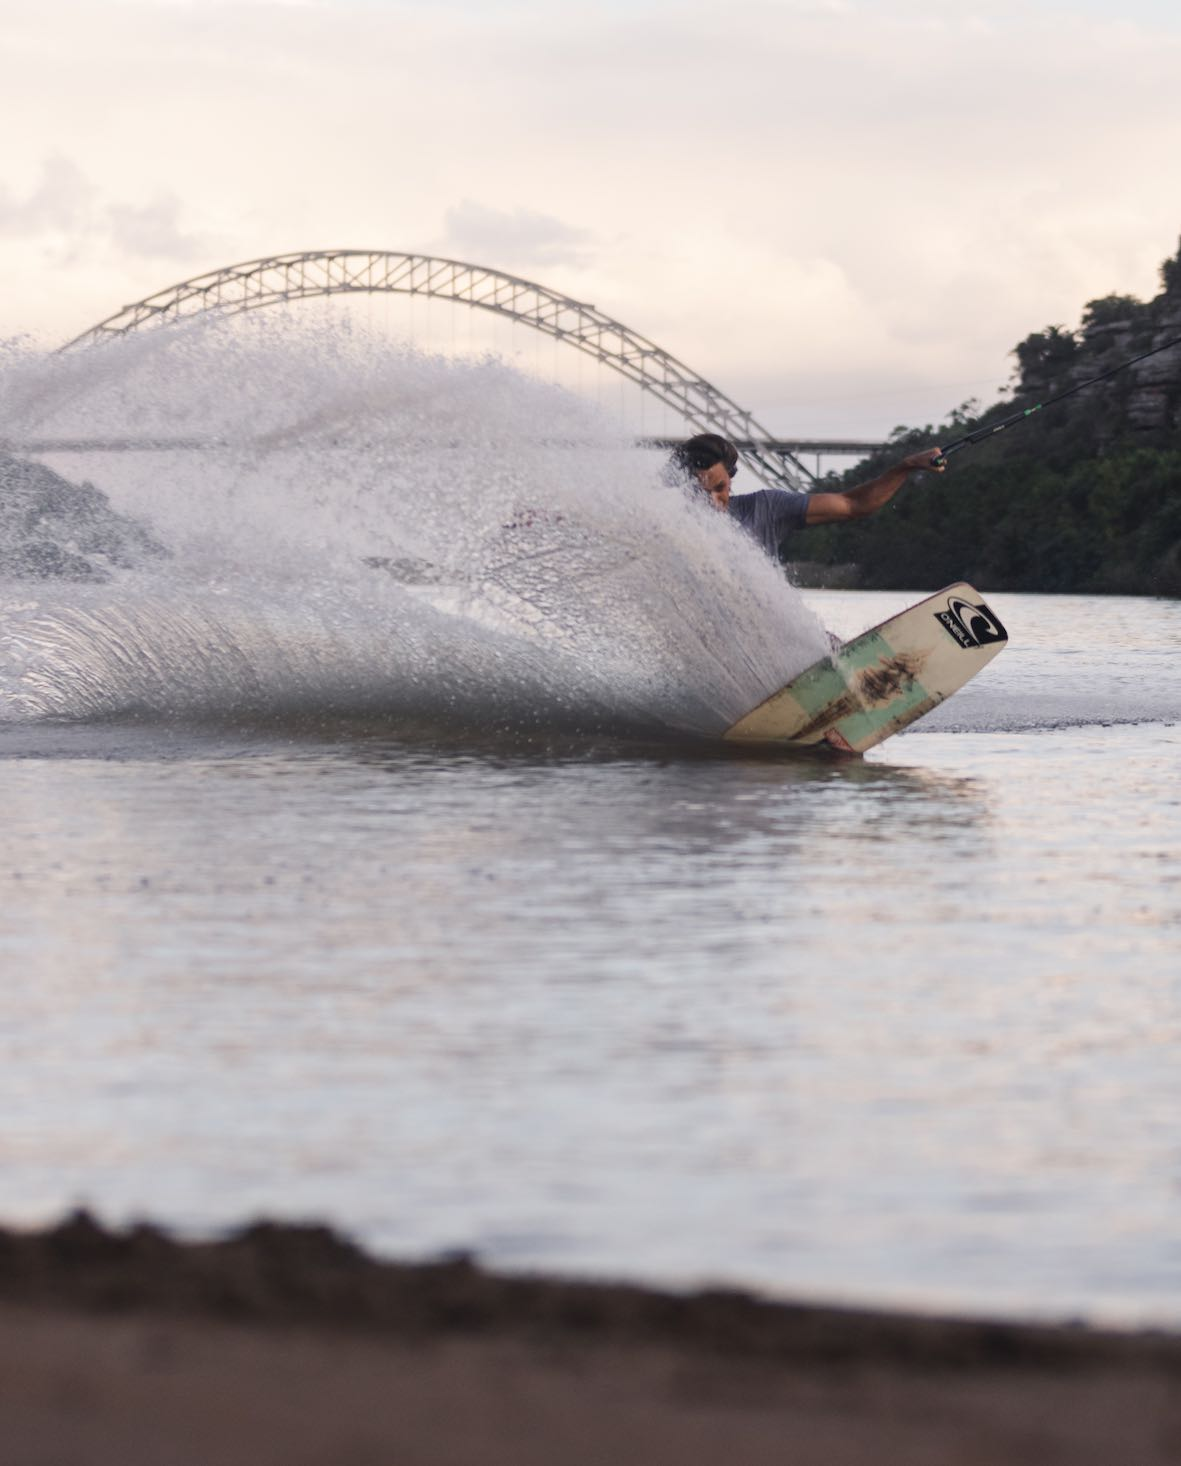 Matti Buys wakeskaing for team O'Neill